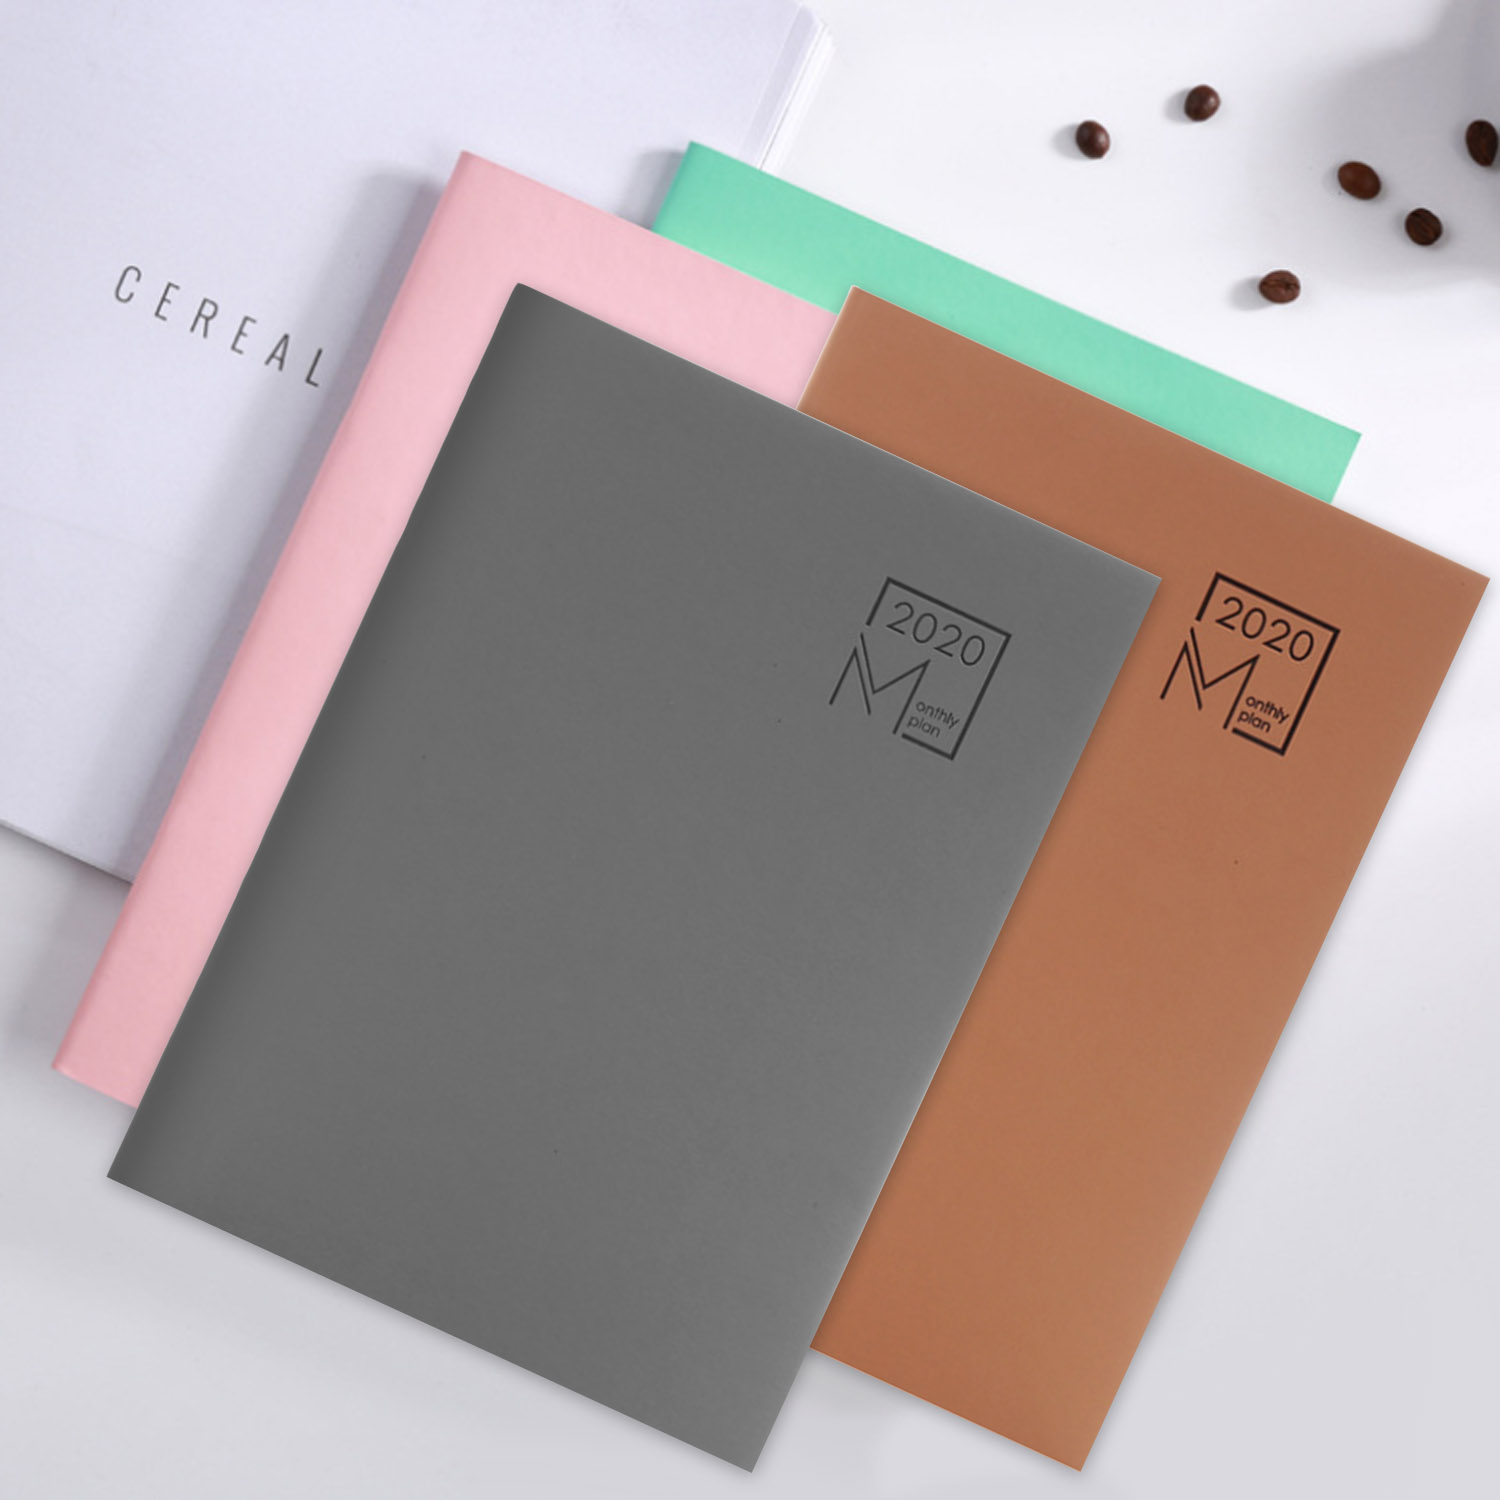 B5 <font><b>2020</b></font> <font><b>Calendar</b></font> Monthly Planner 365 Days Daily Schedule Plan Notebooks with 48 Pages for Home Office Students Supplies image